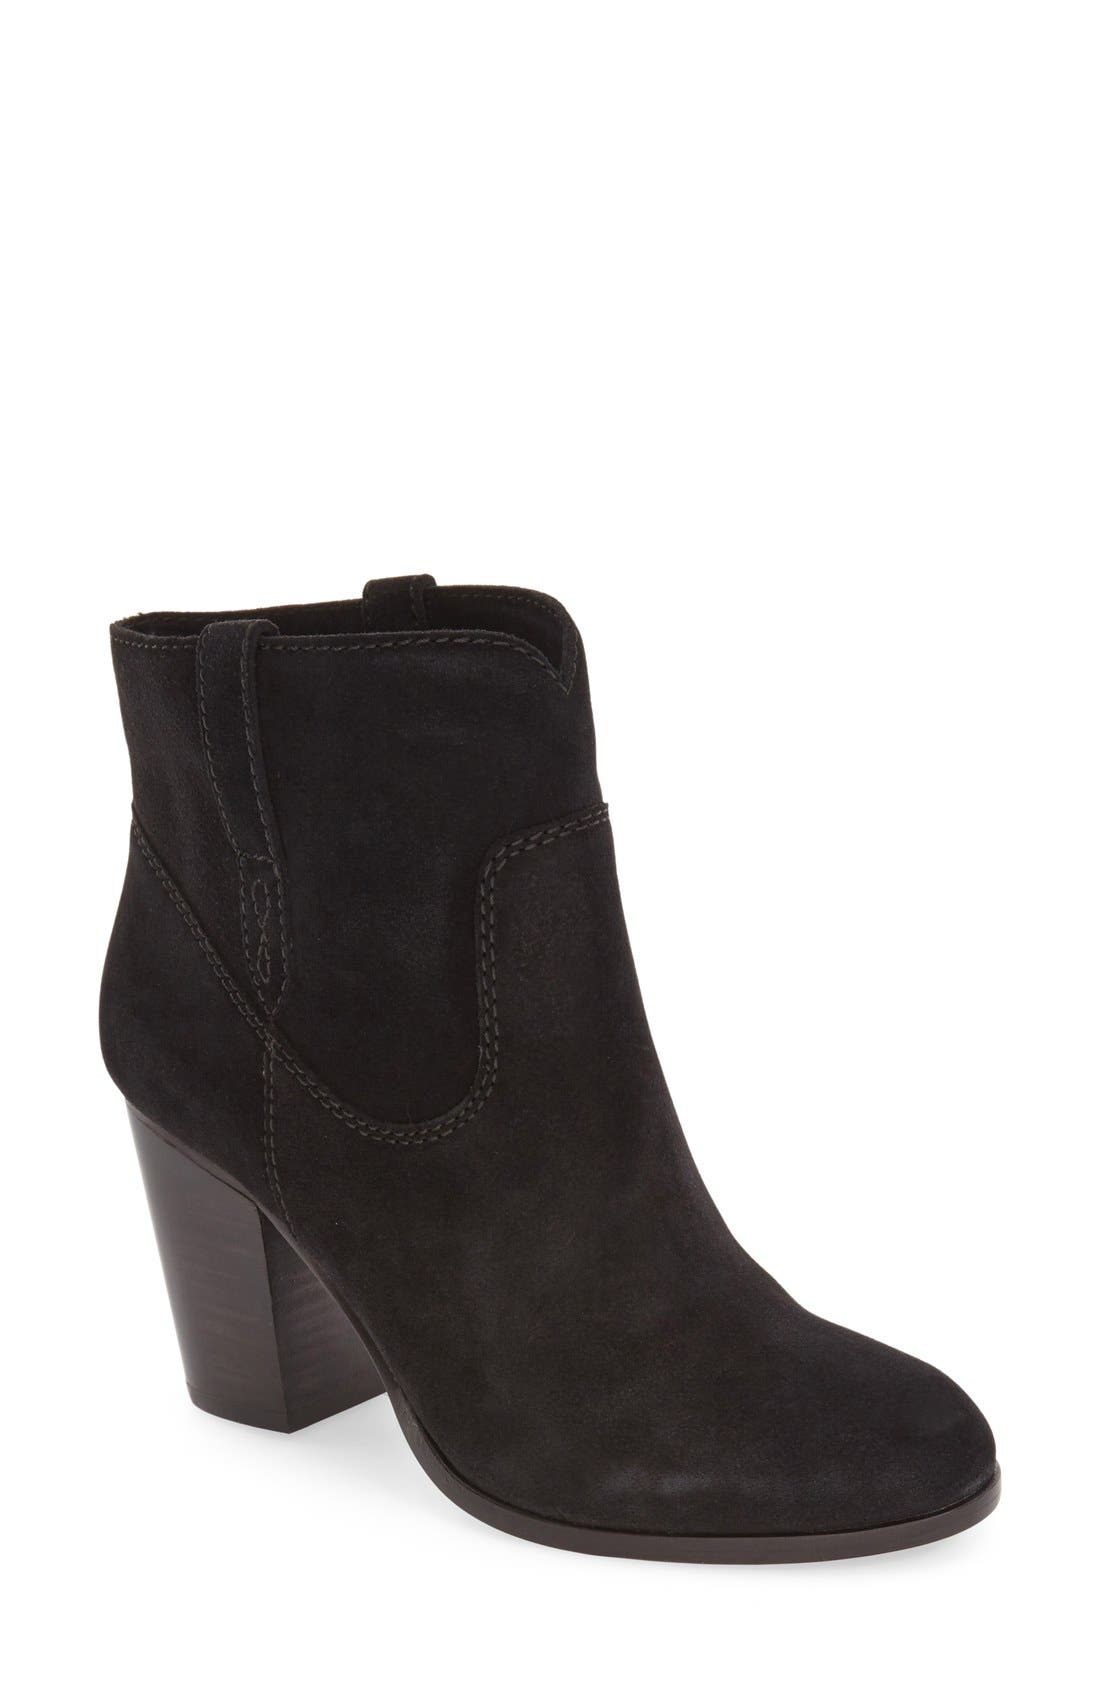 FRYE 'Myra' Bootie, Main, color, 001